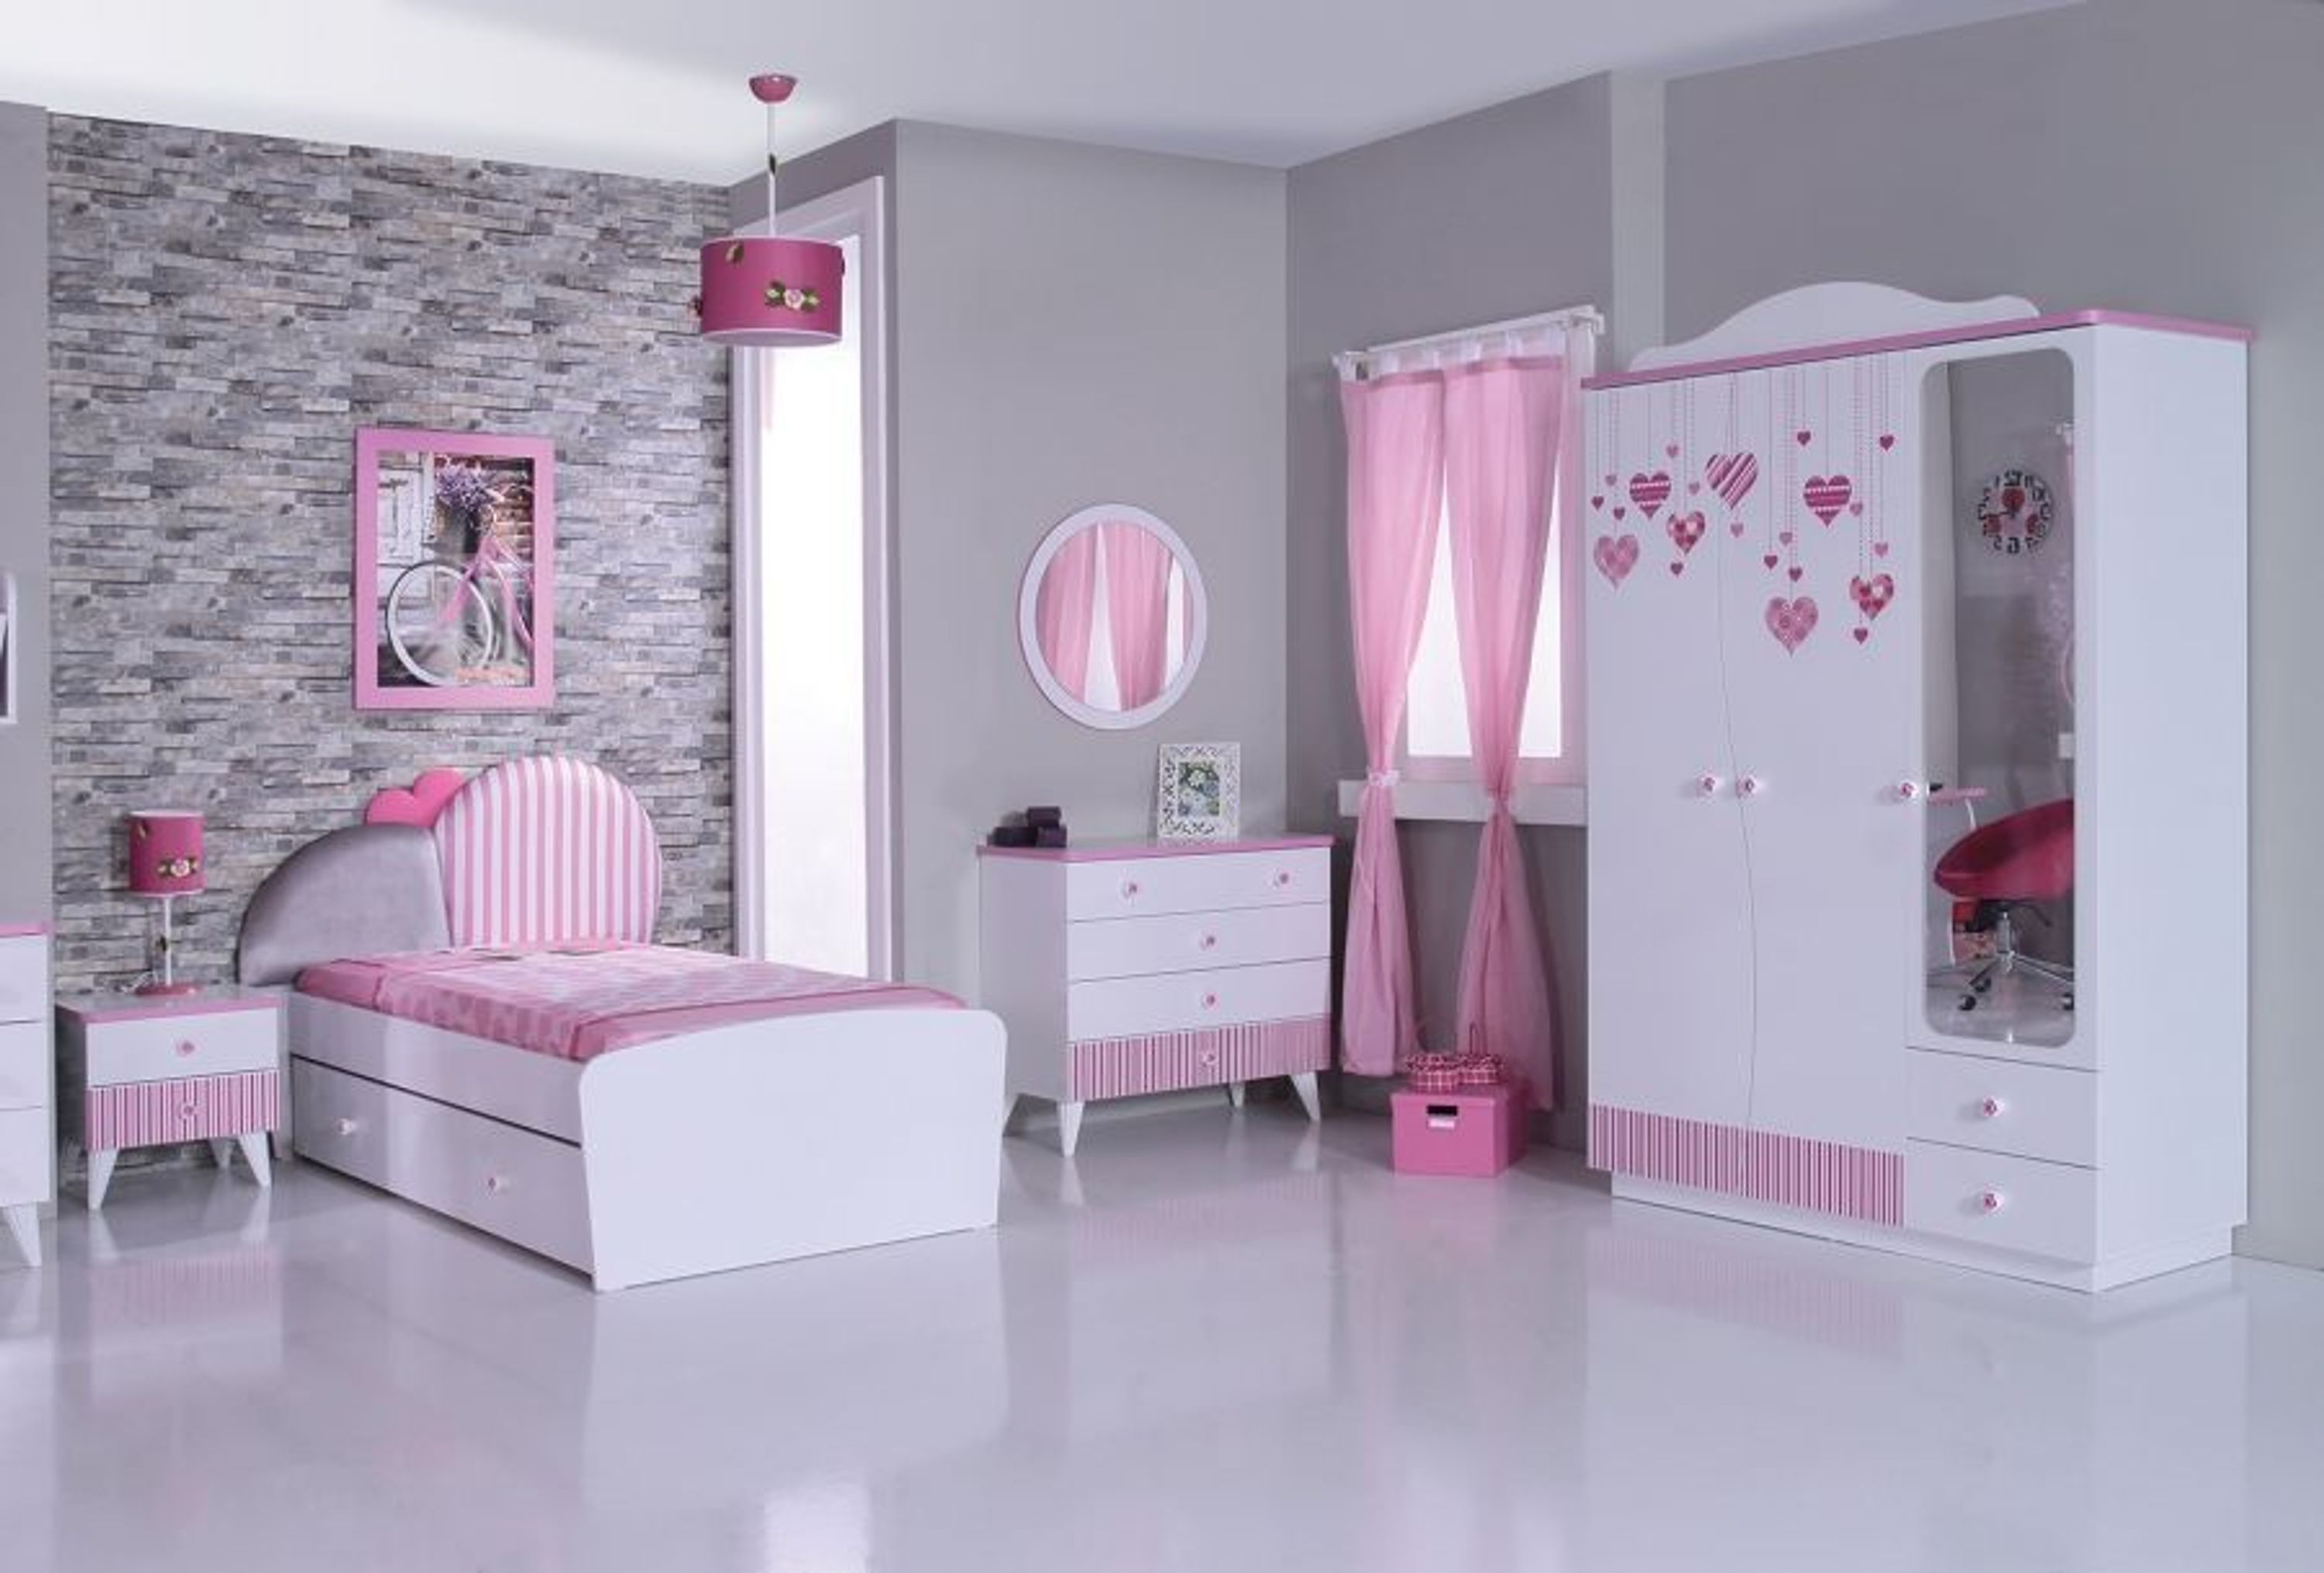 kinderzimmerset elissa m dchenzimmer 4 tlg kaufen bei. Black Bedroom Furniture Sets. Home Design Ideas